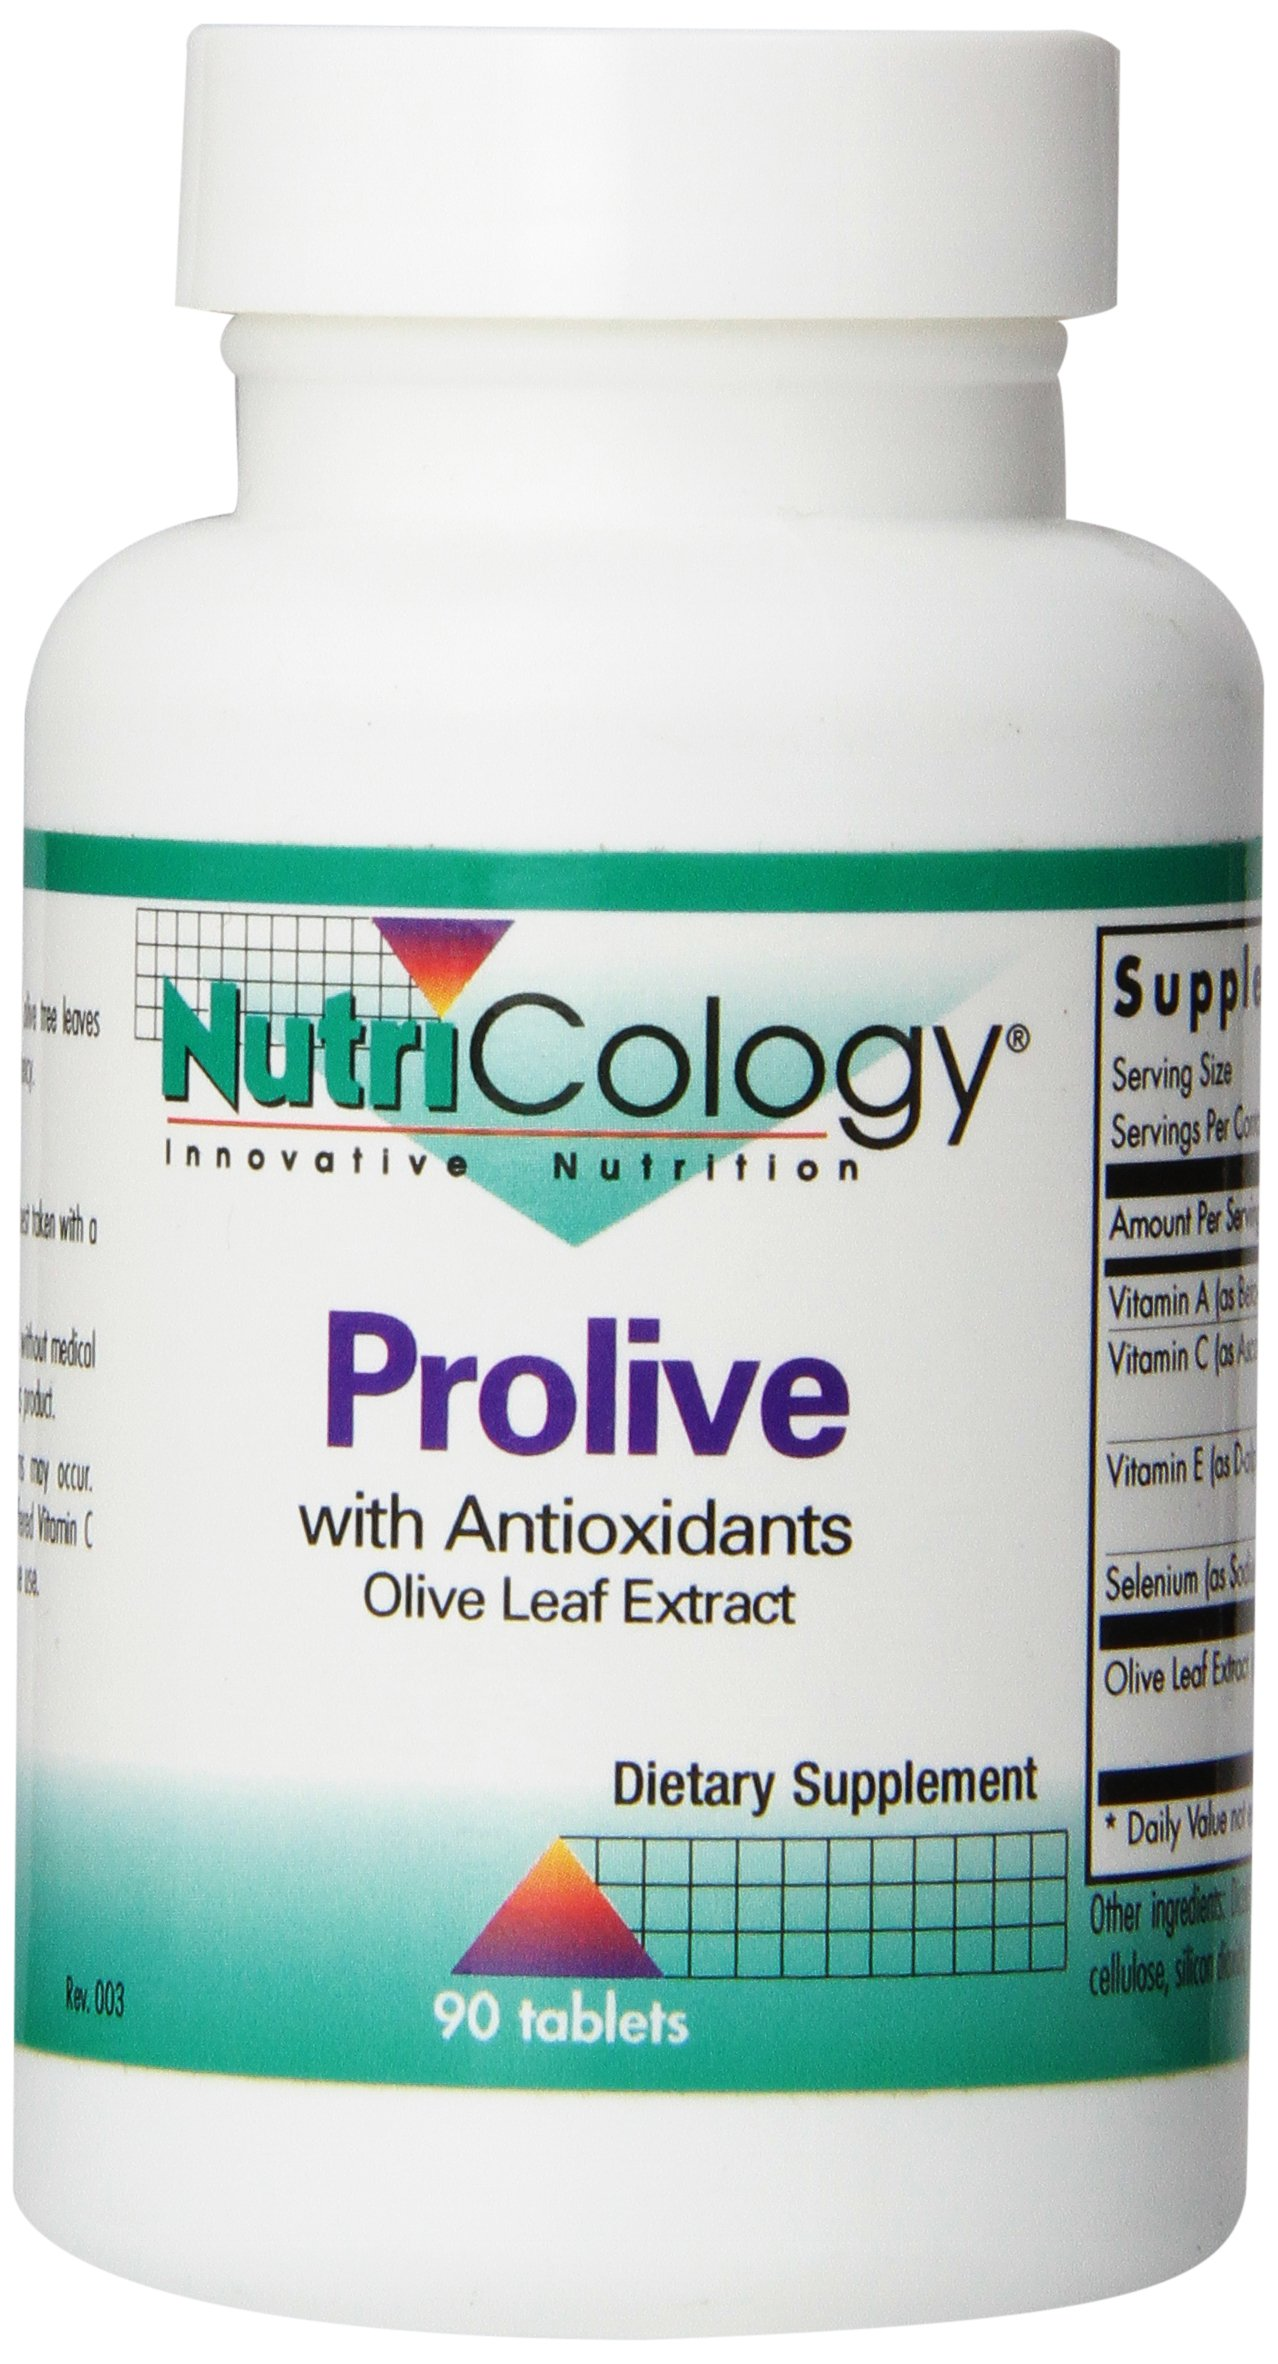 Nutricology Prolive with Antioxidants, Tablets, 90-Count